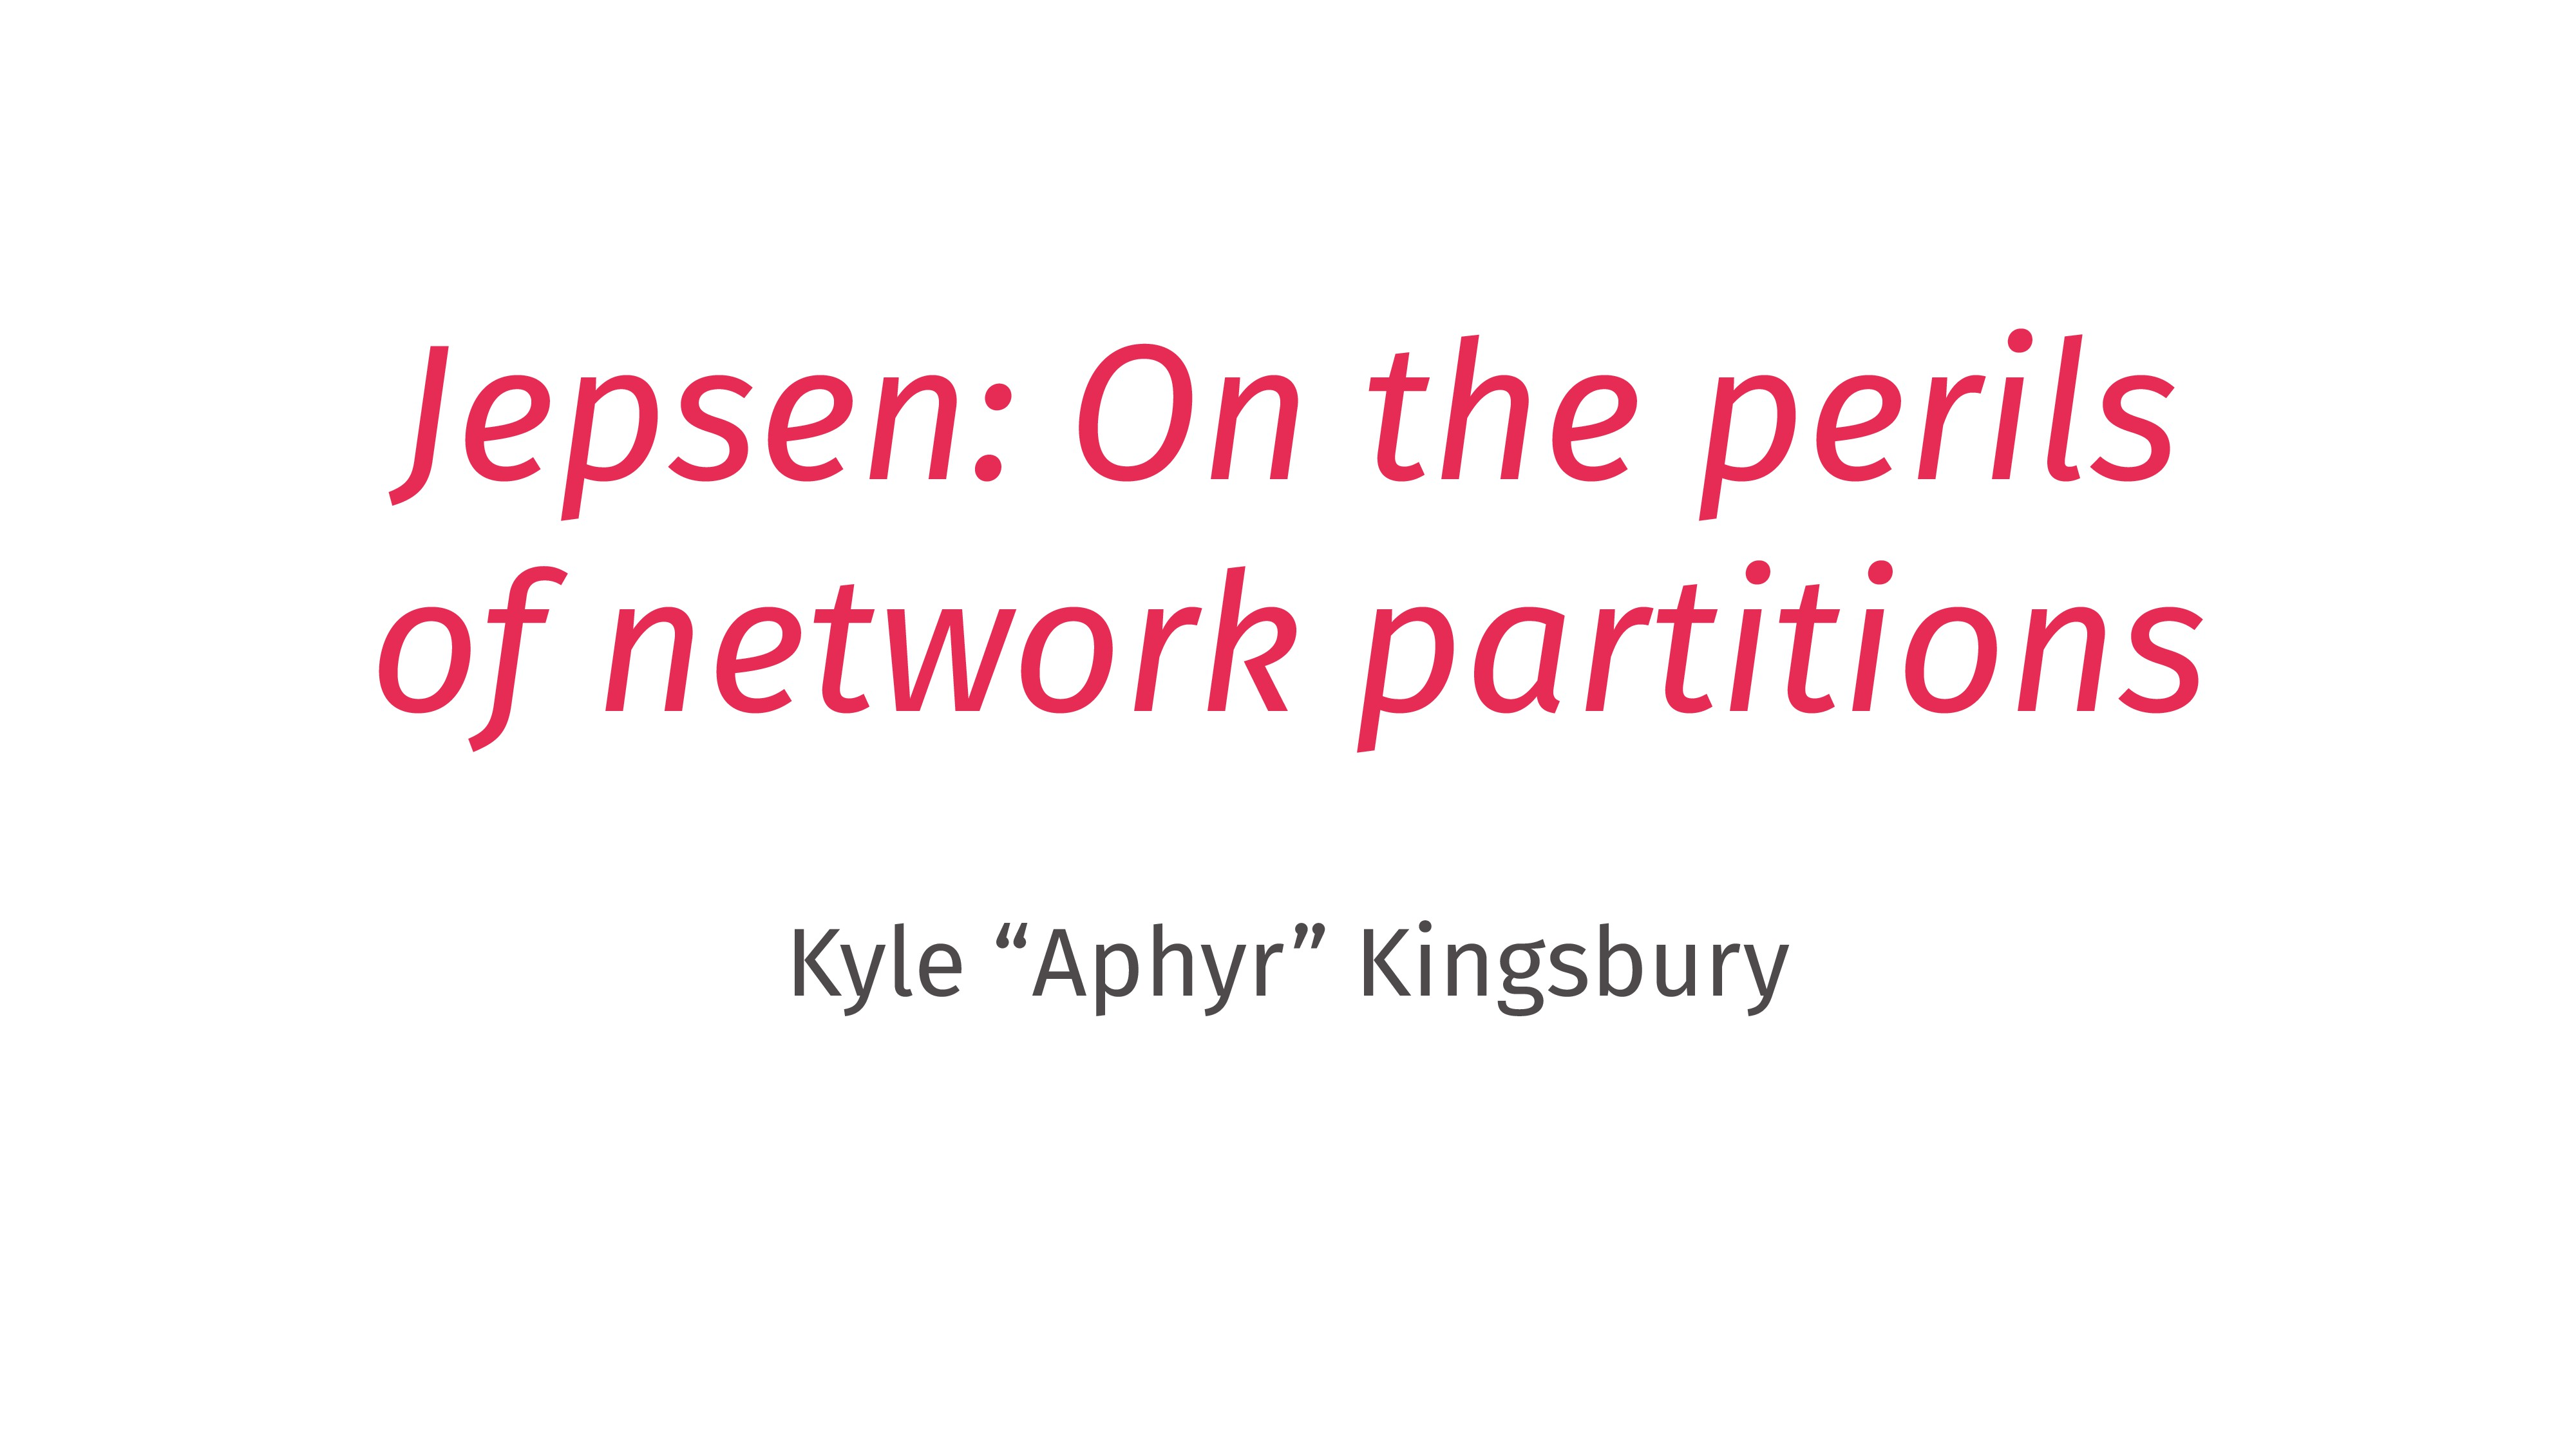 Jepsen: On the perils